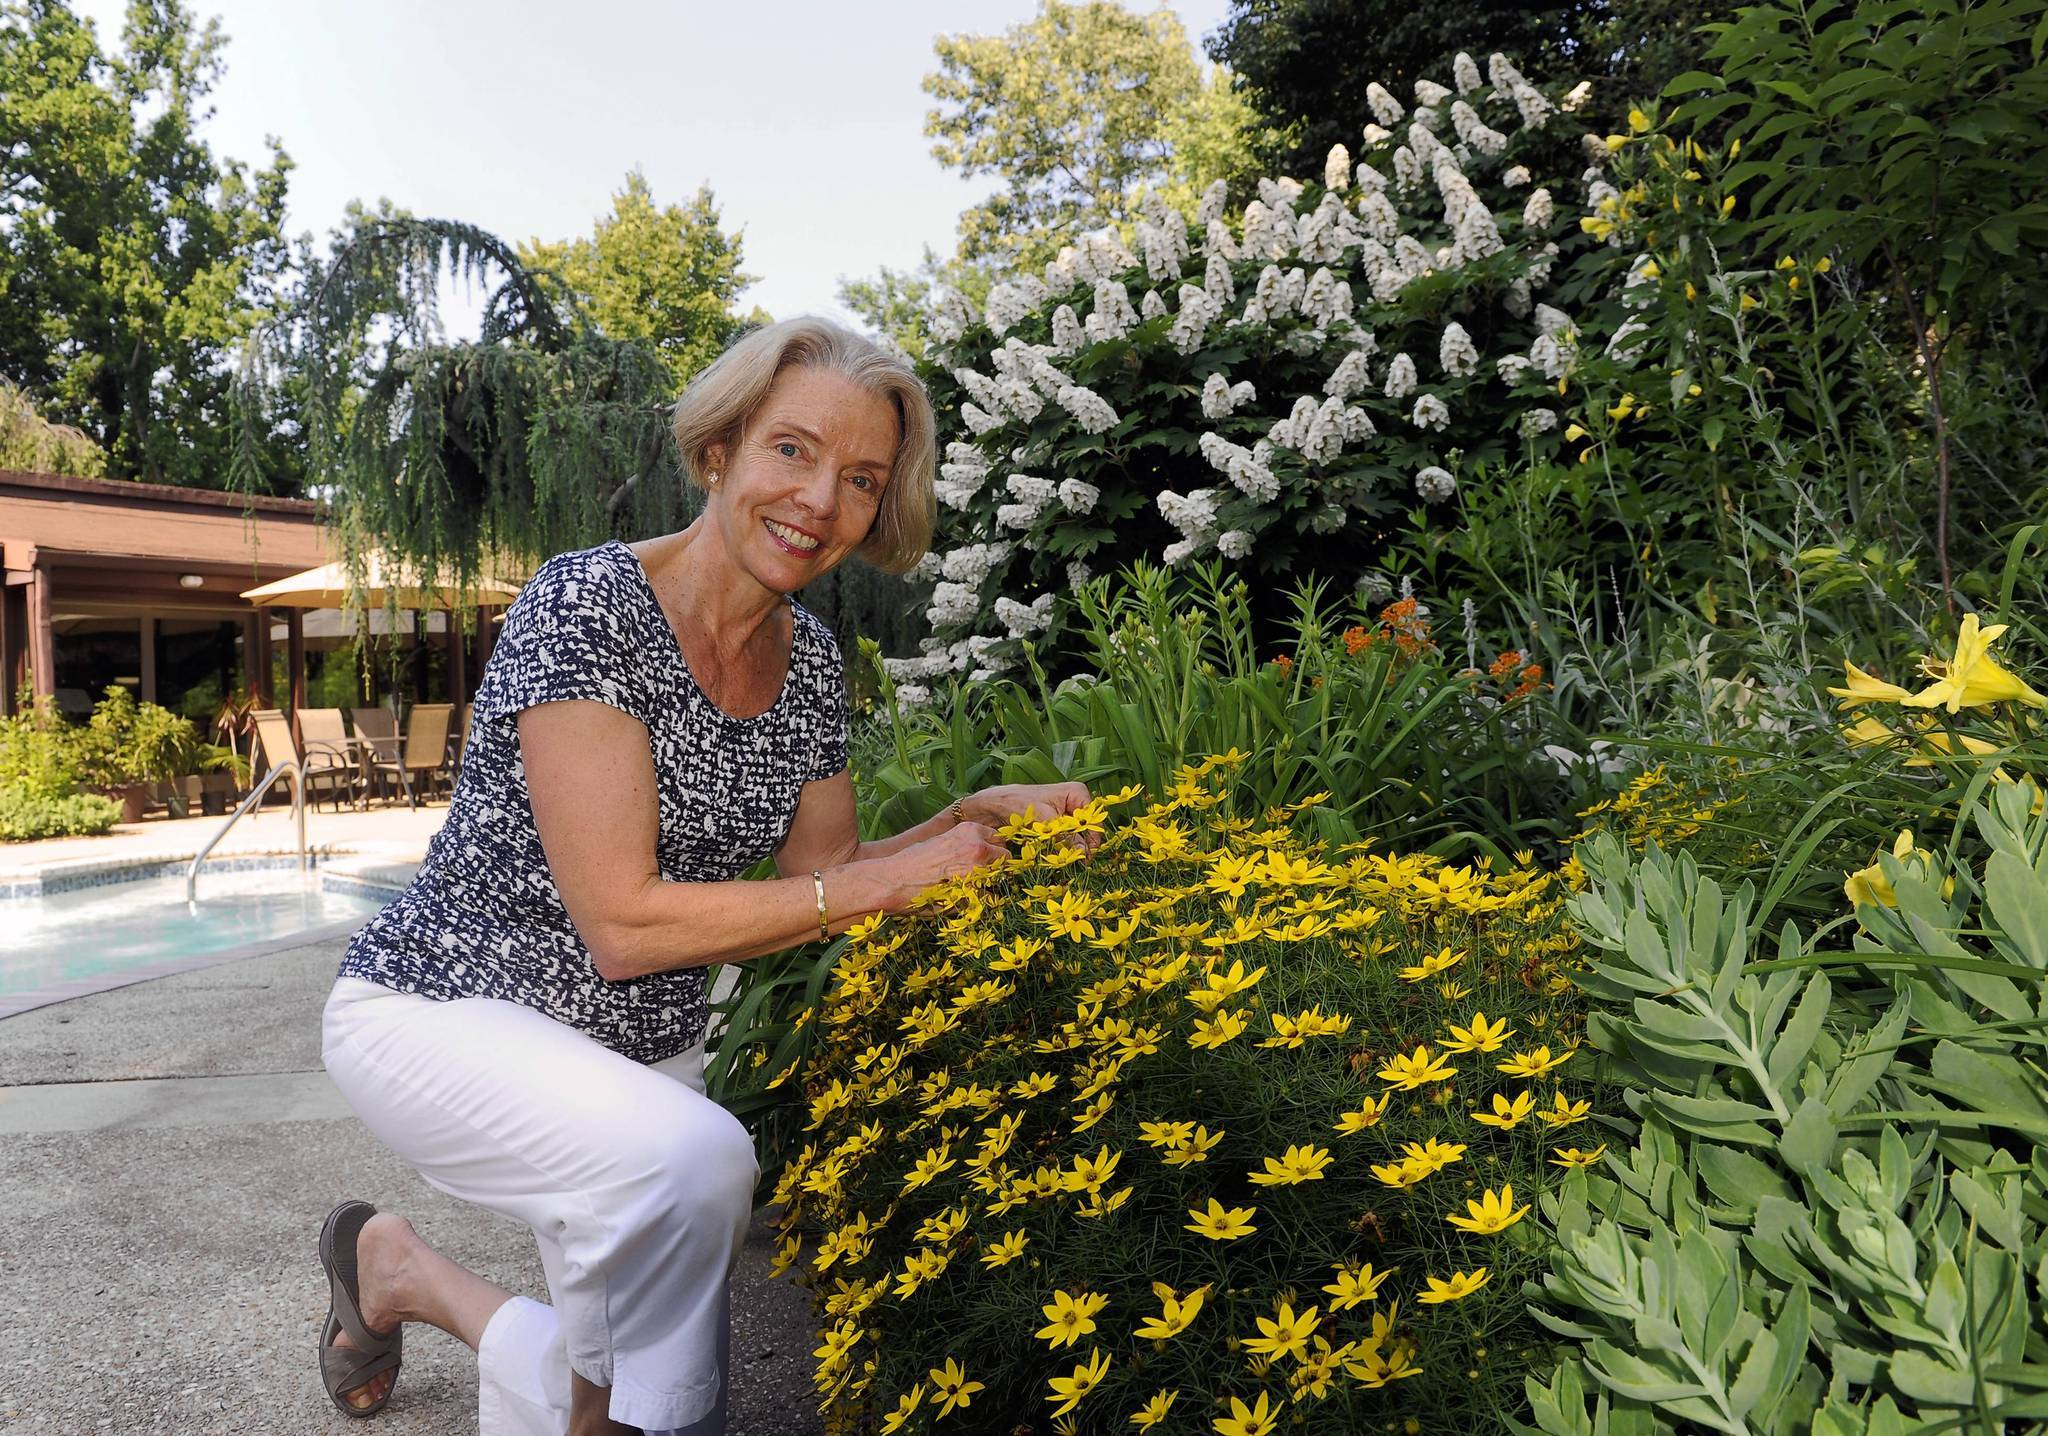 Cristina Quigley, who along with her husband Harry, is a winner of the overall garden contest.